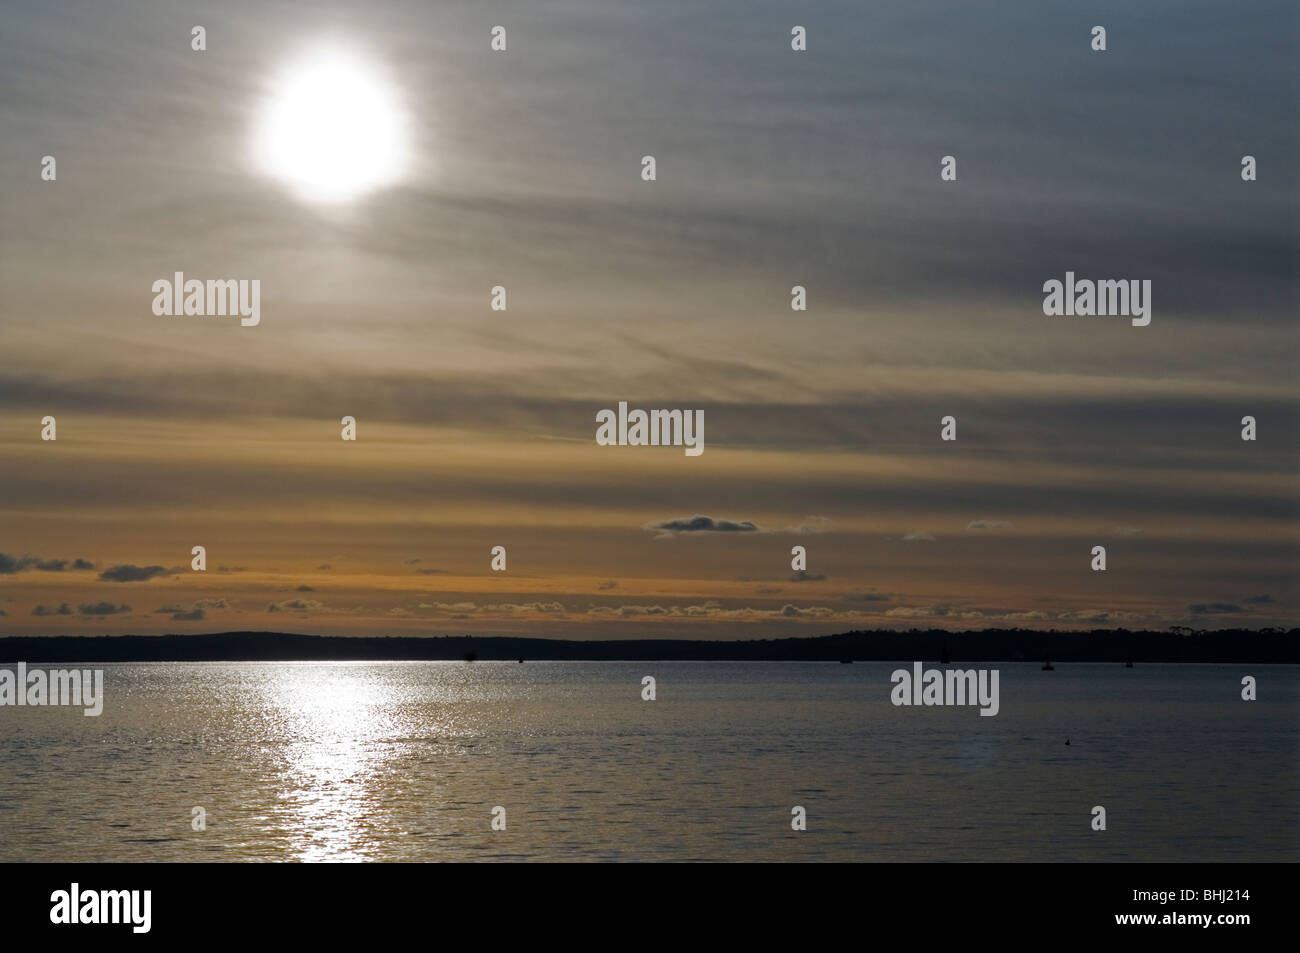 View from ferry across St Maves to Falmouth at sunset, Cornwall England UK Stock Photo